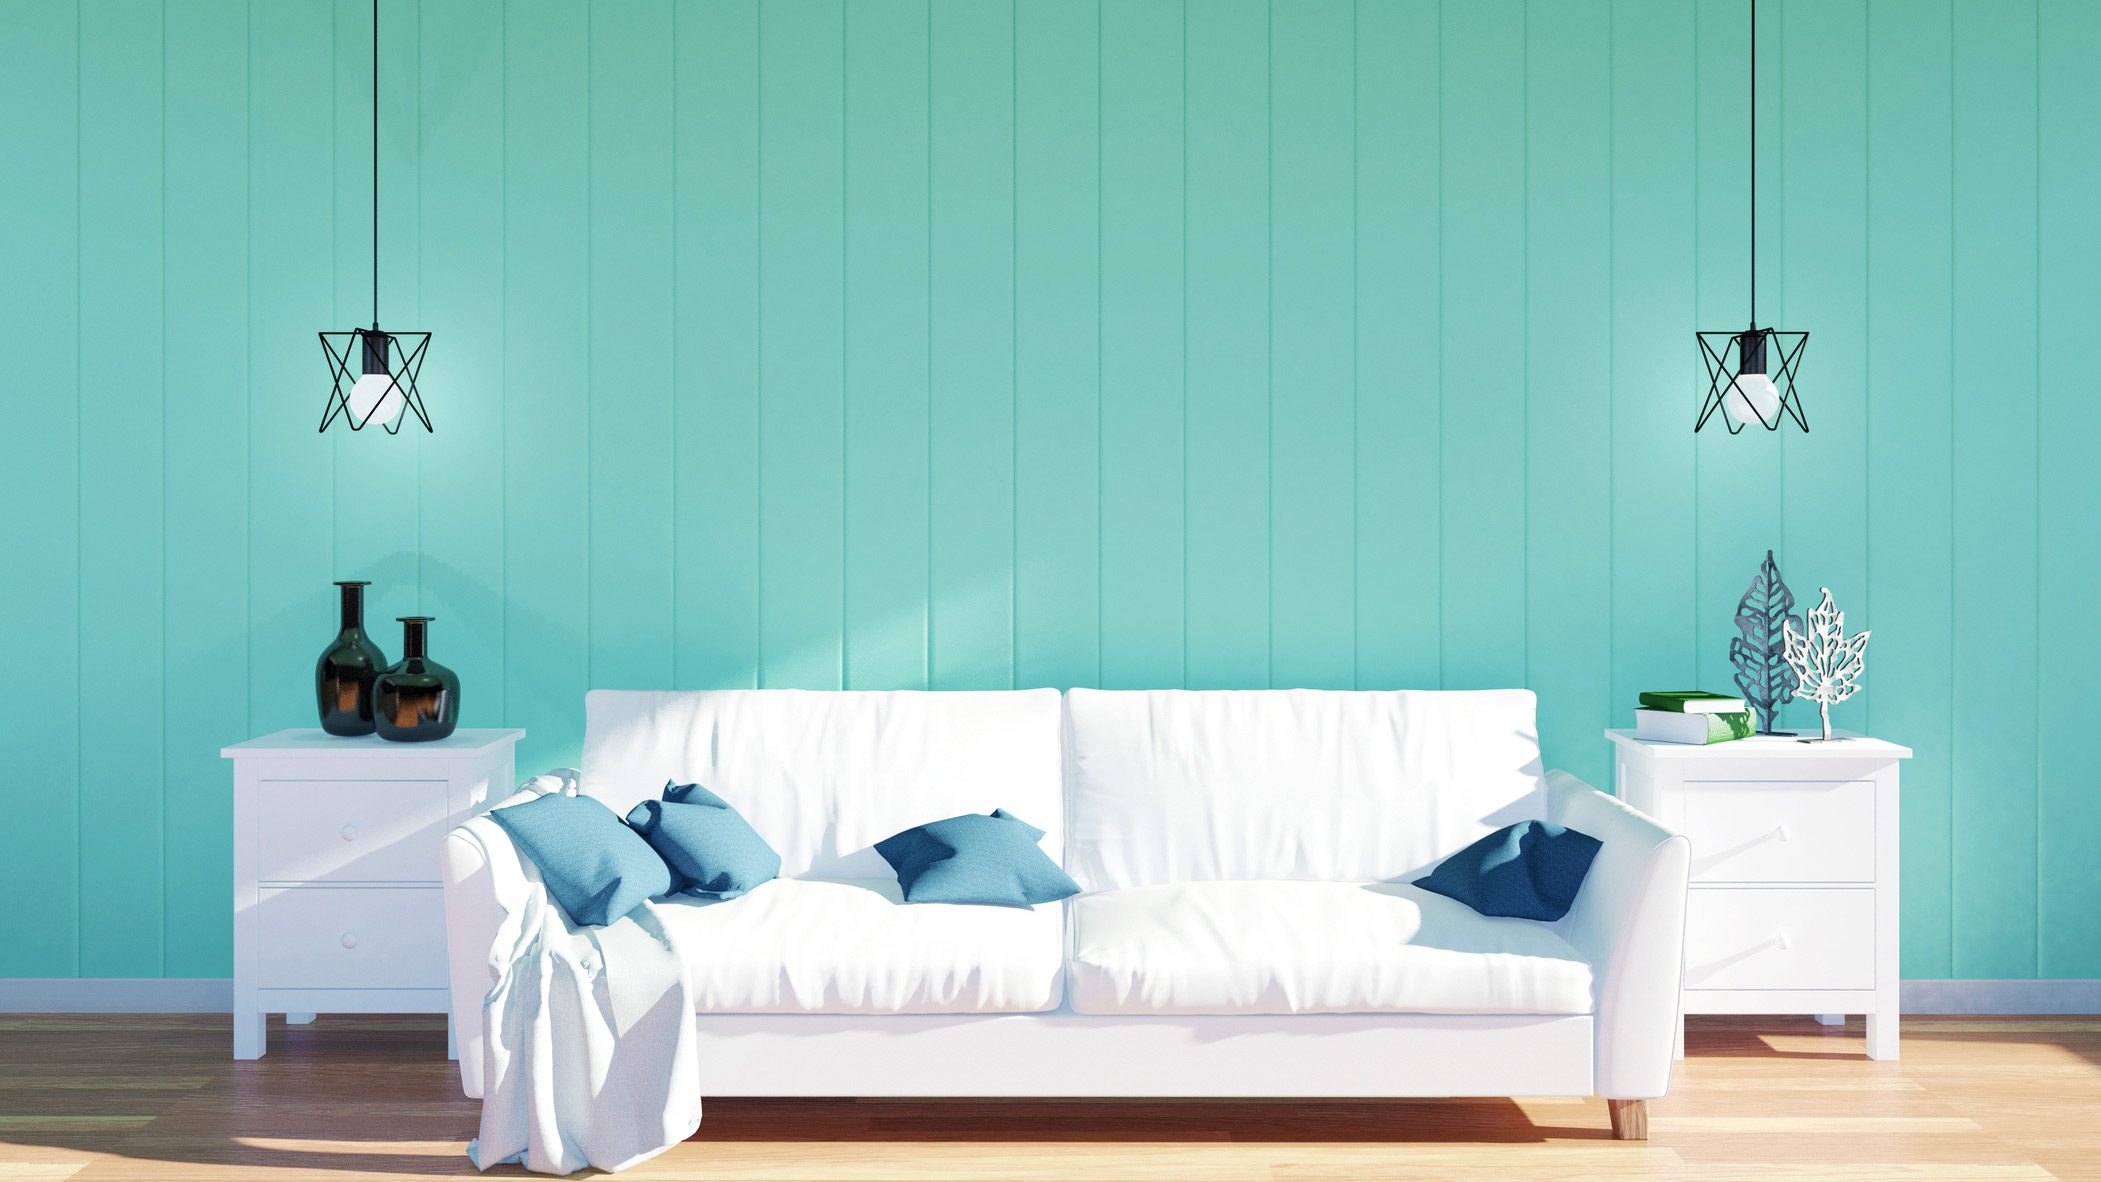 What Color To Paint Paneling Wood Paneling Makeover Ideas Groovy In A Whole New Way Realtor